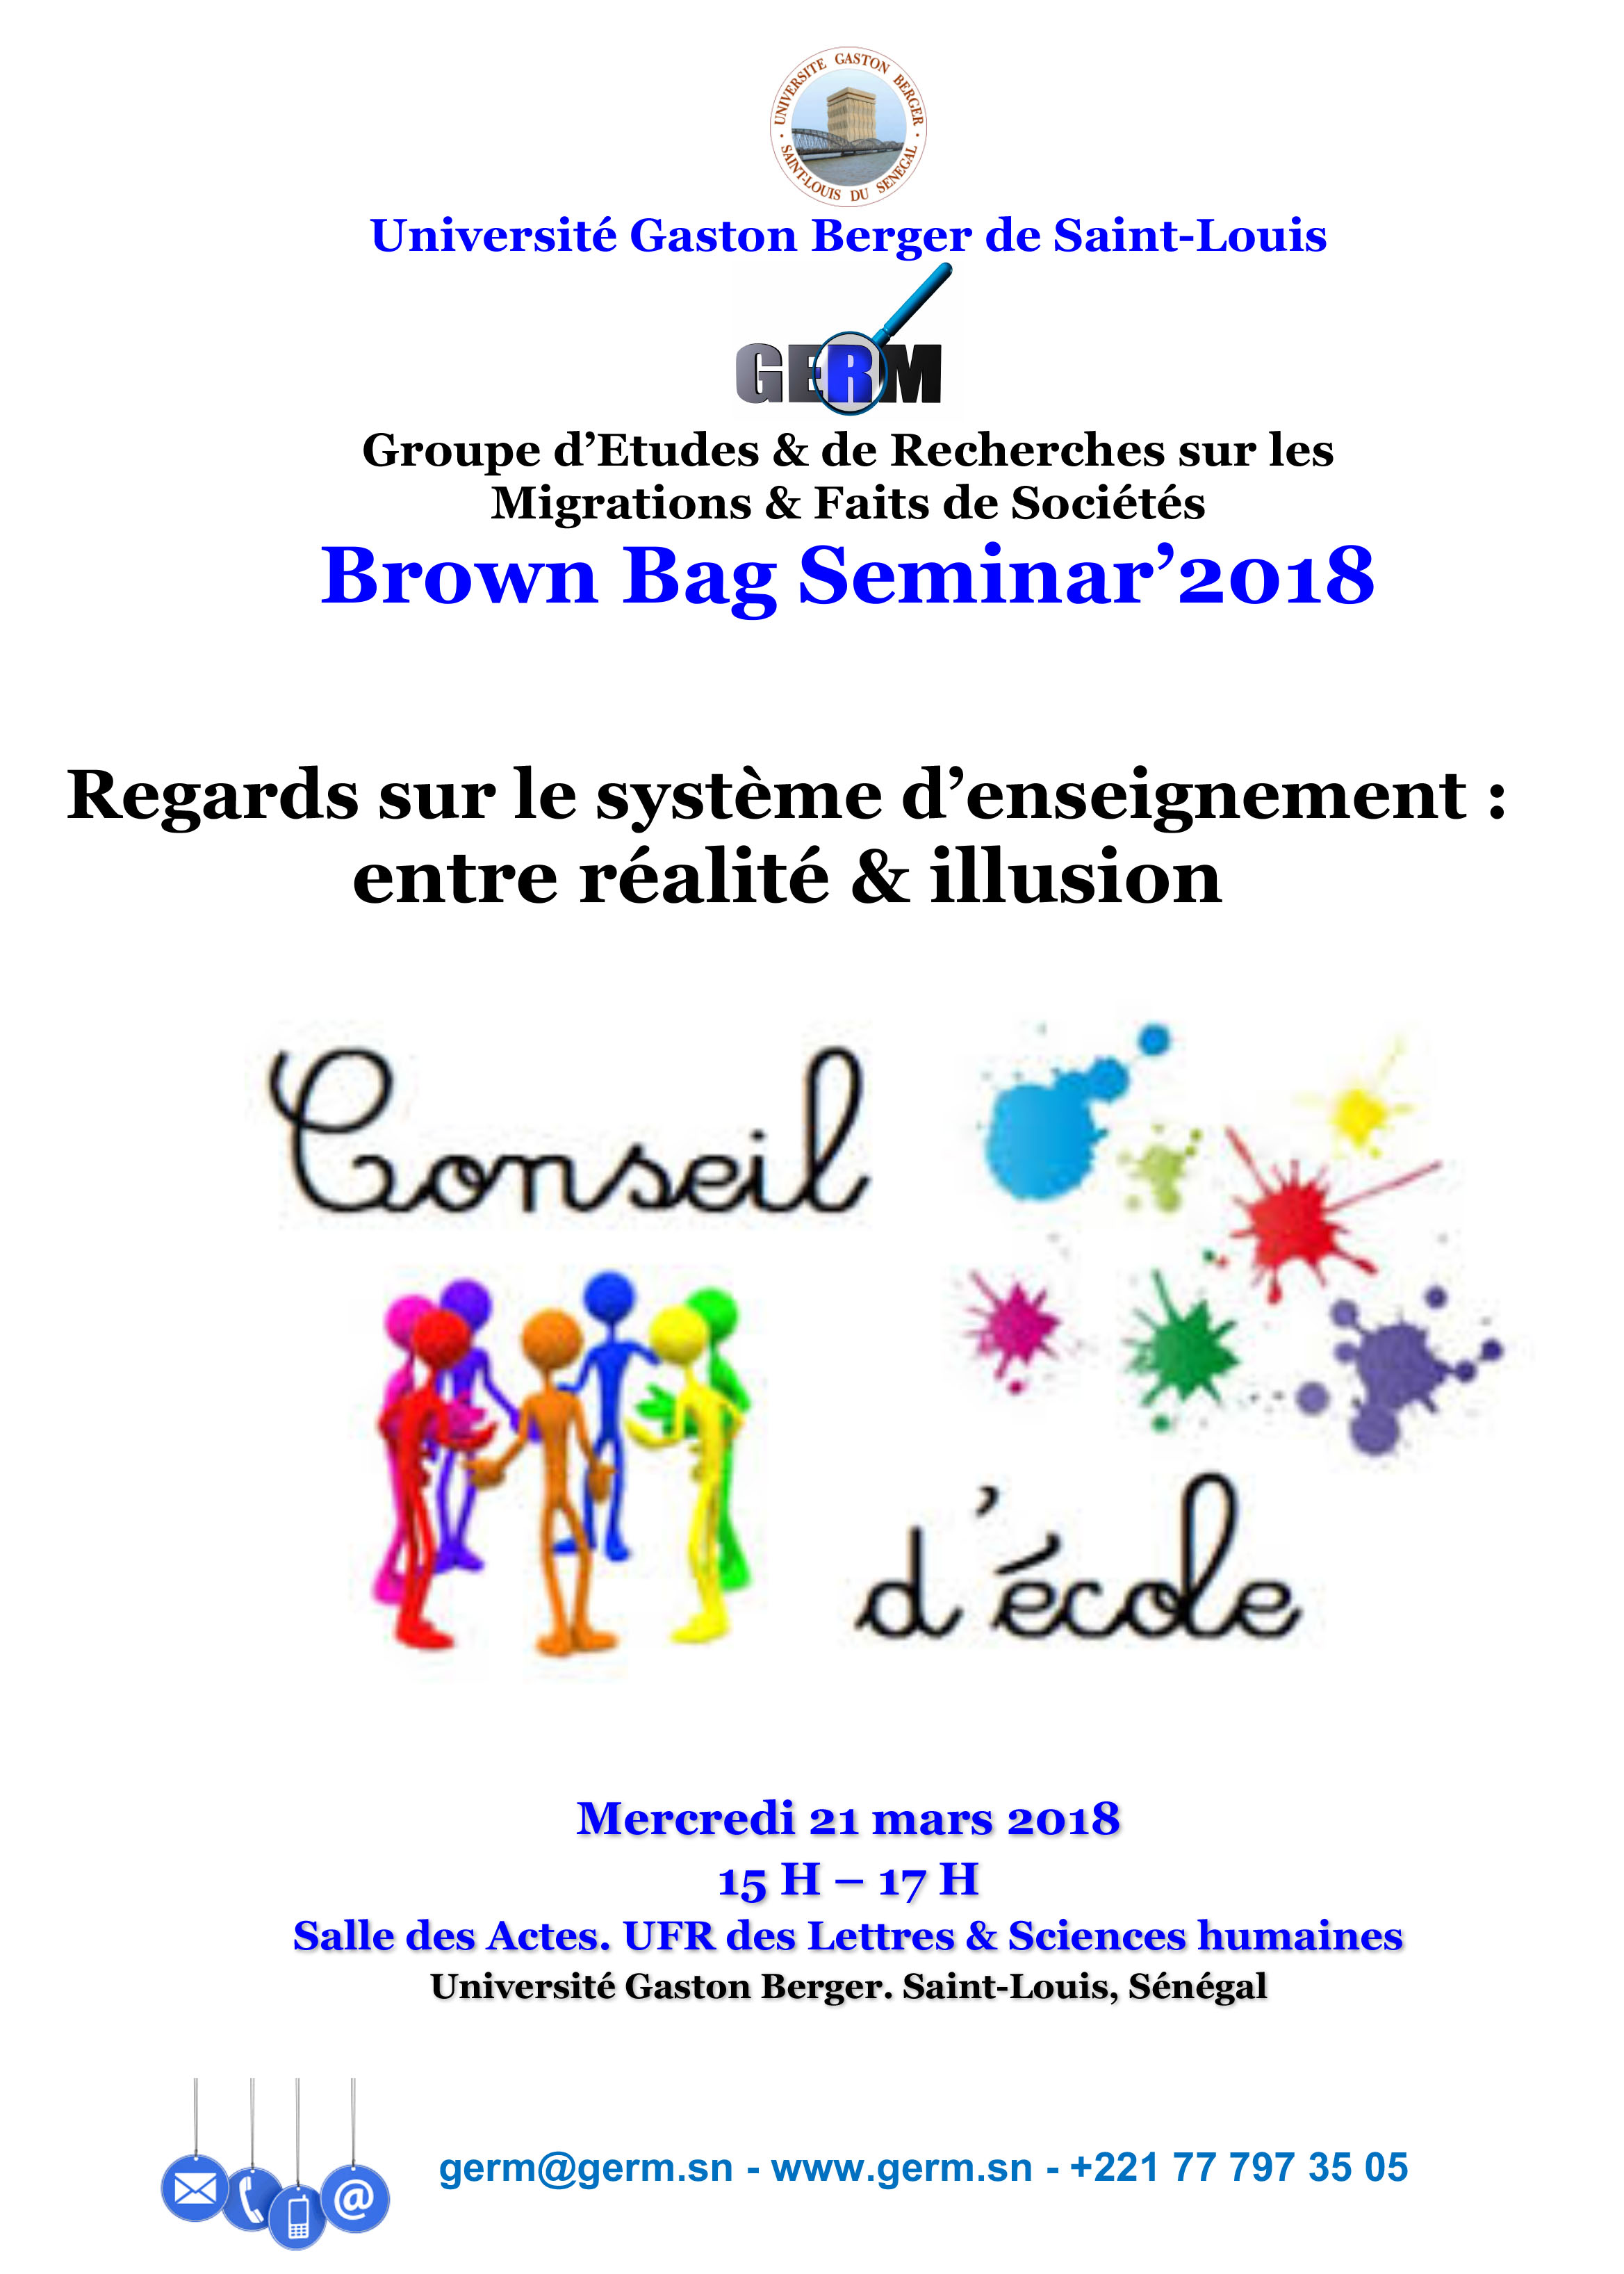 Lilly On Twitter Please Send Me Links To Your Roblox - Brown Bag Seminar 2018 Regards Sur Le Systeme D Enseignement